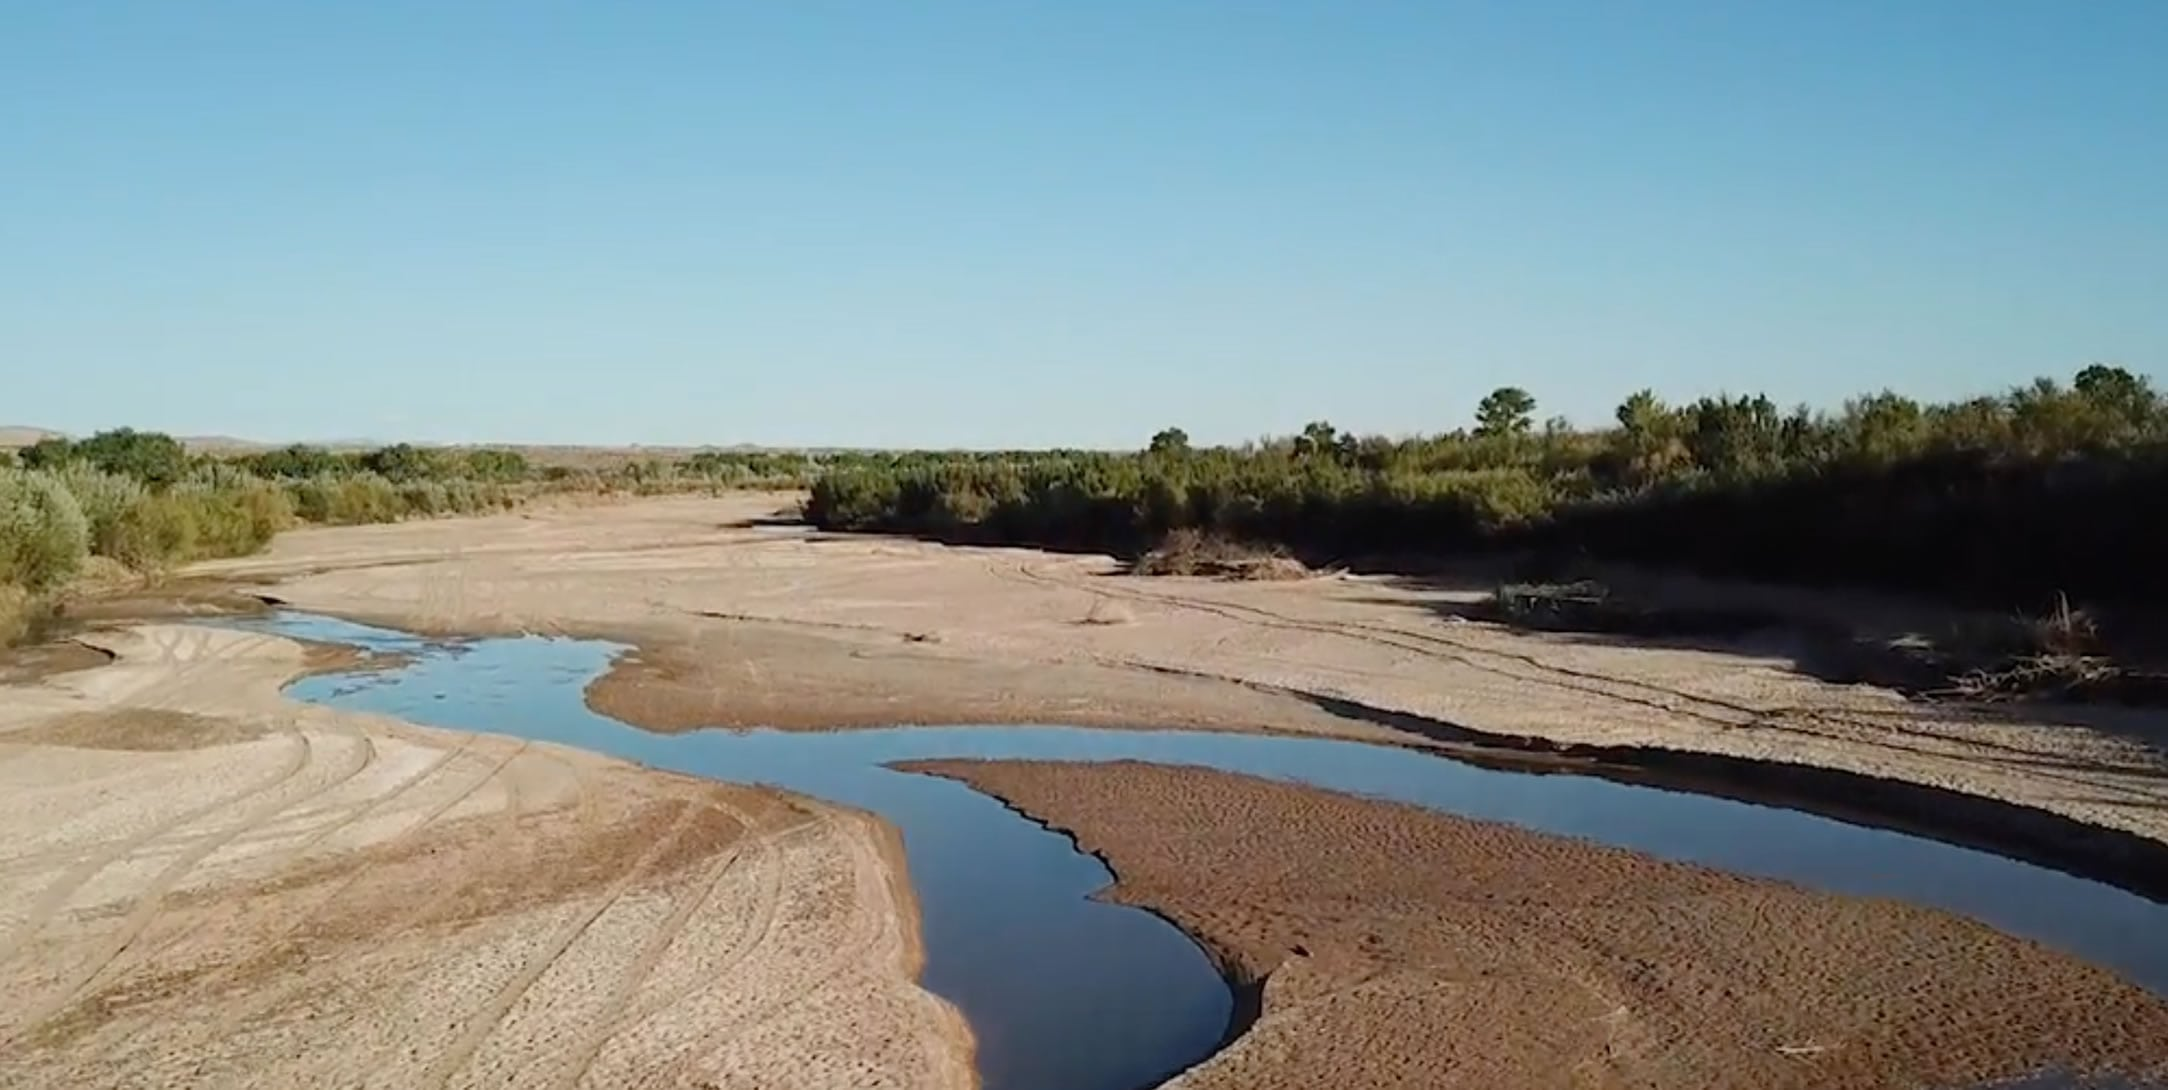 In a Warming West, the Rio Grande Is Drying Up